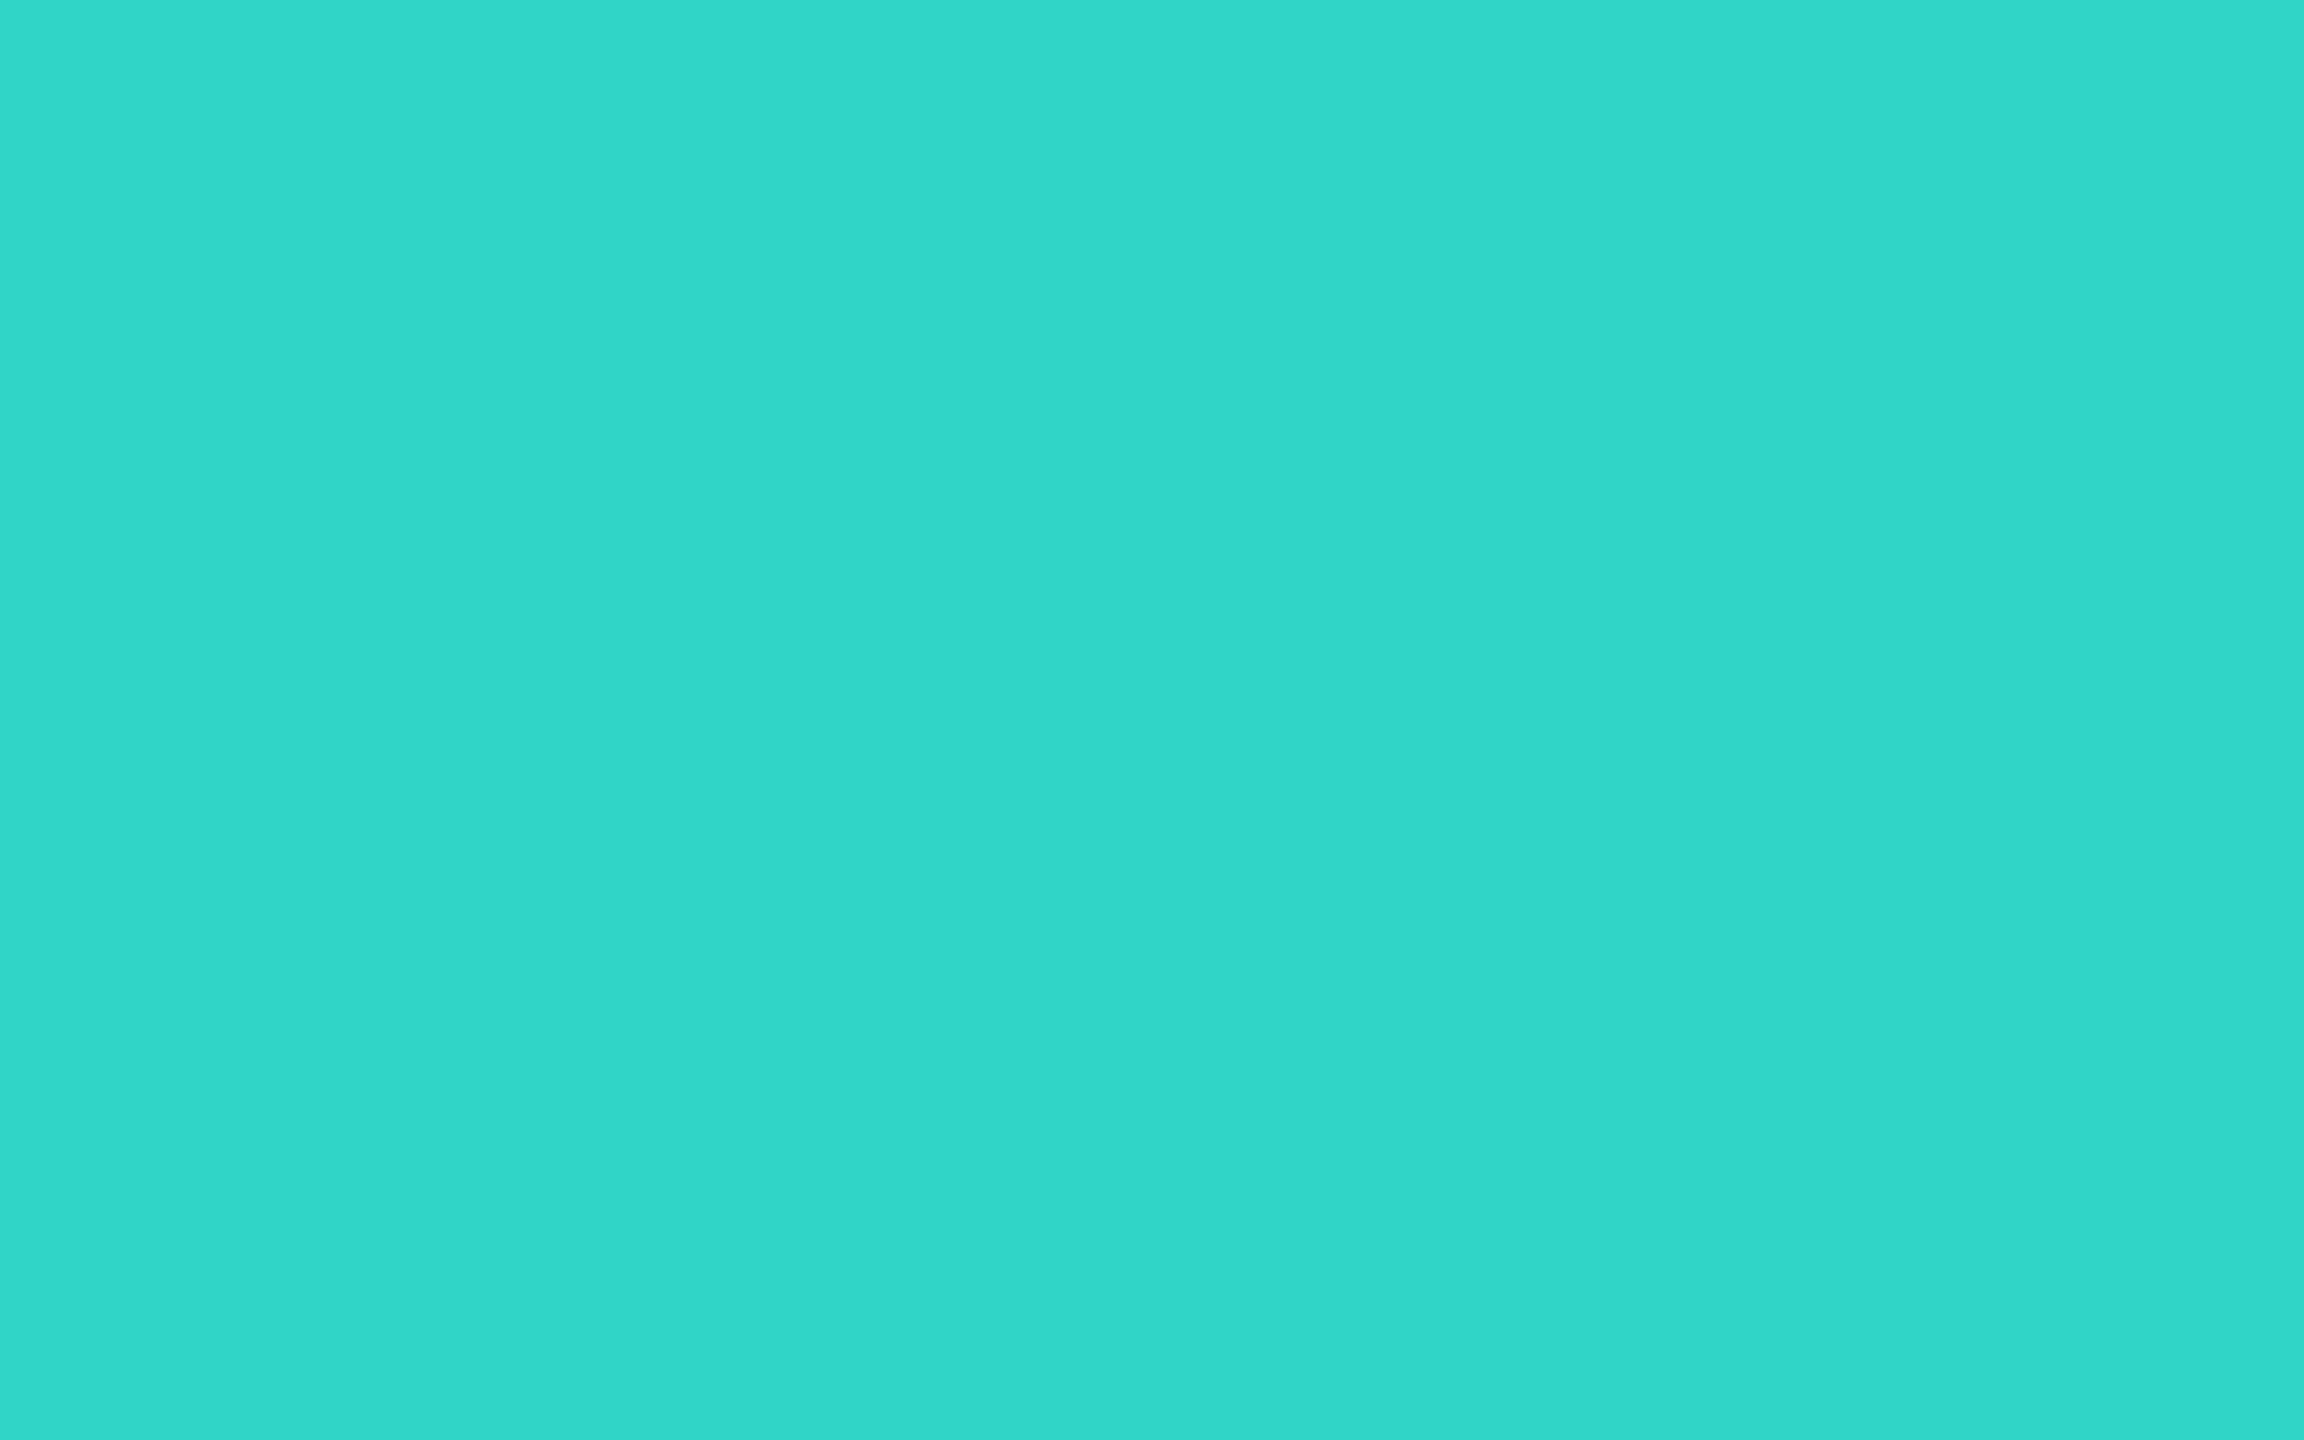 2304x1440 Turquoise Solid Color Background